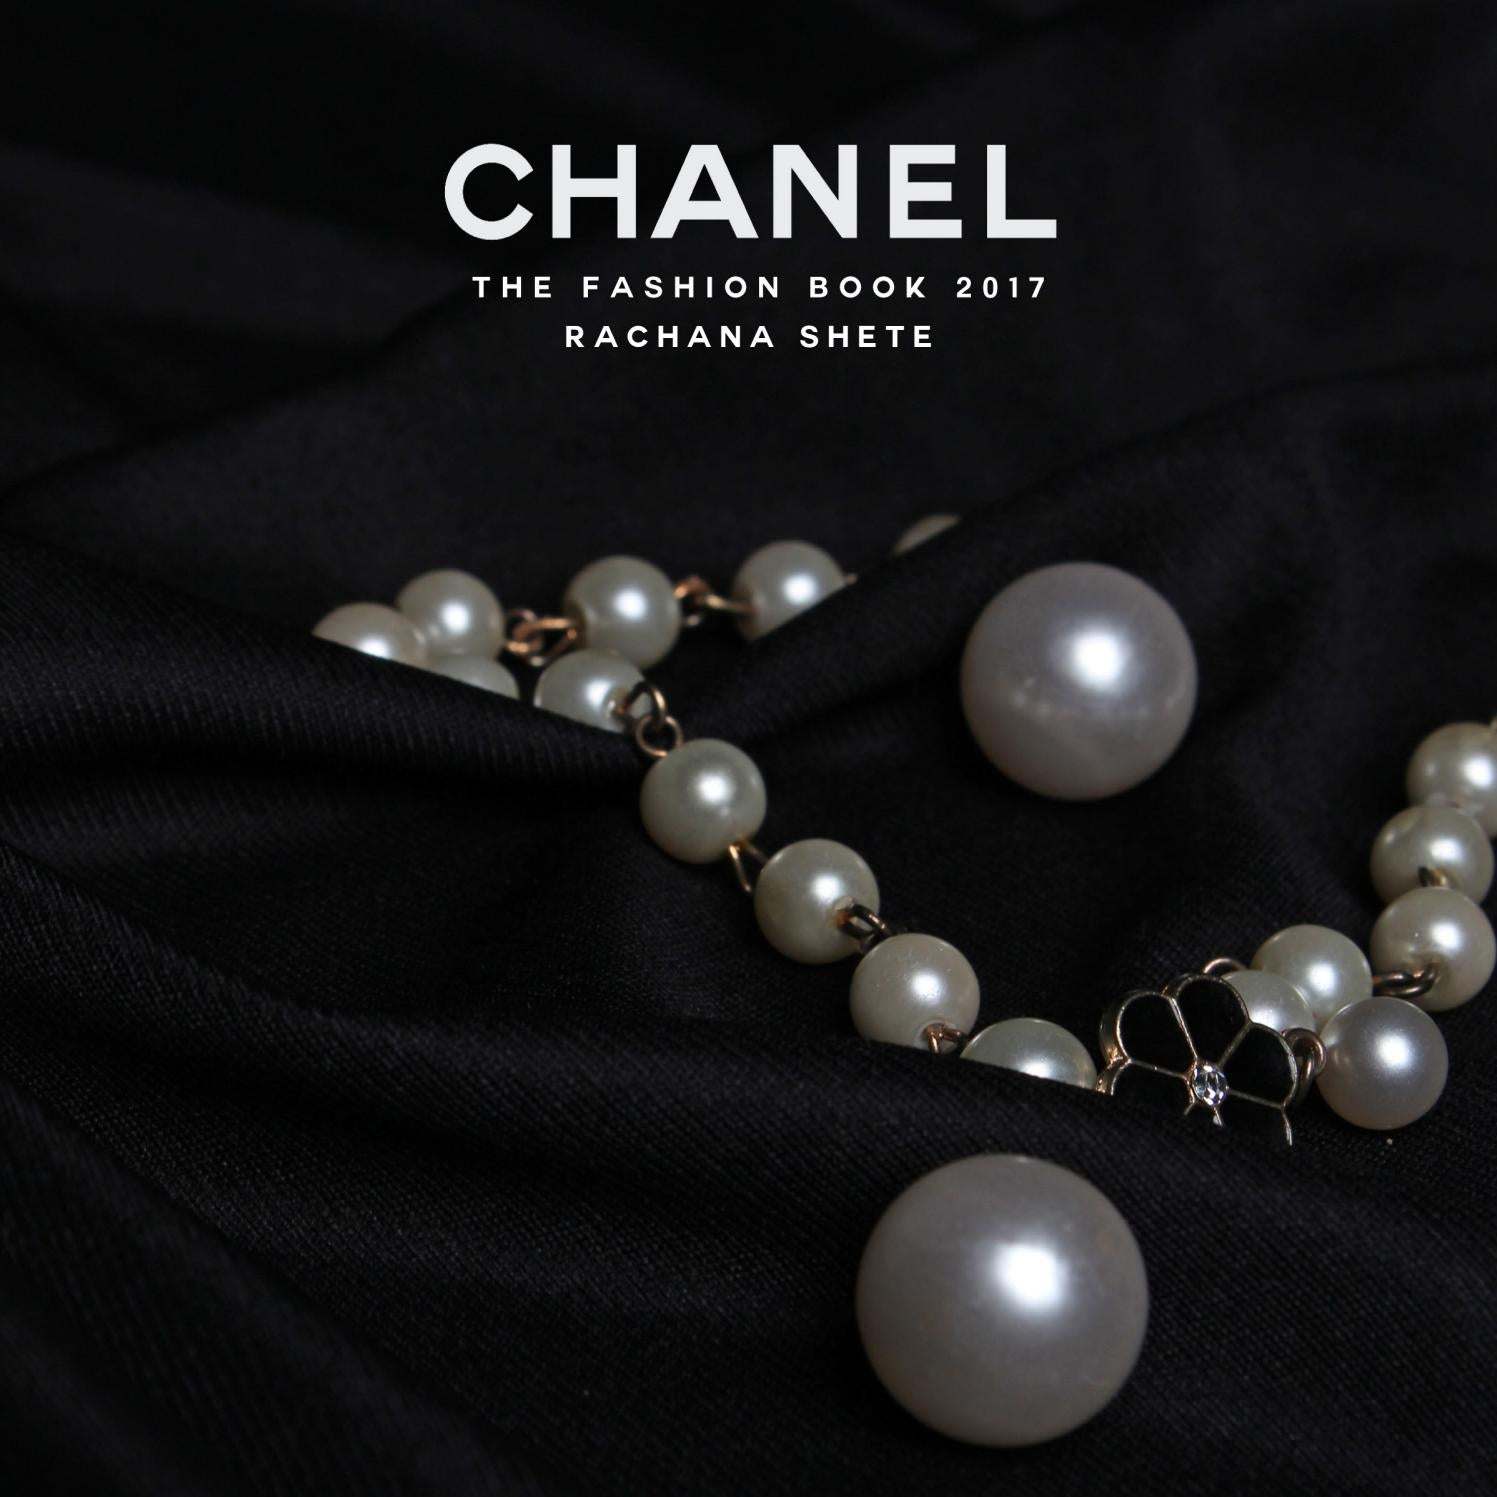 Chanel Coffee Table Book By Rachana Shete Issuu